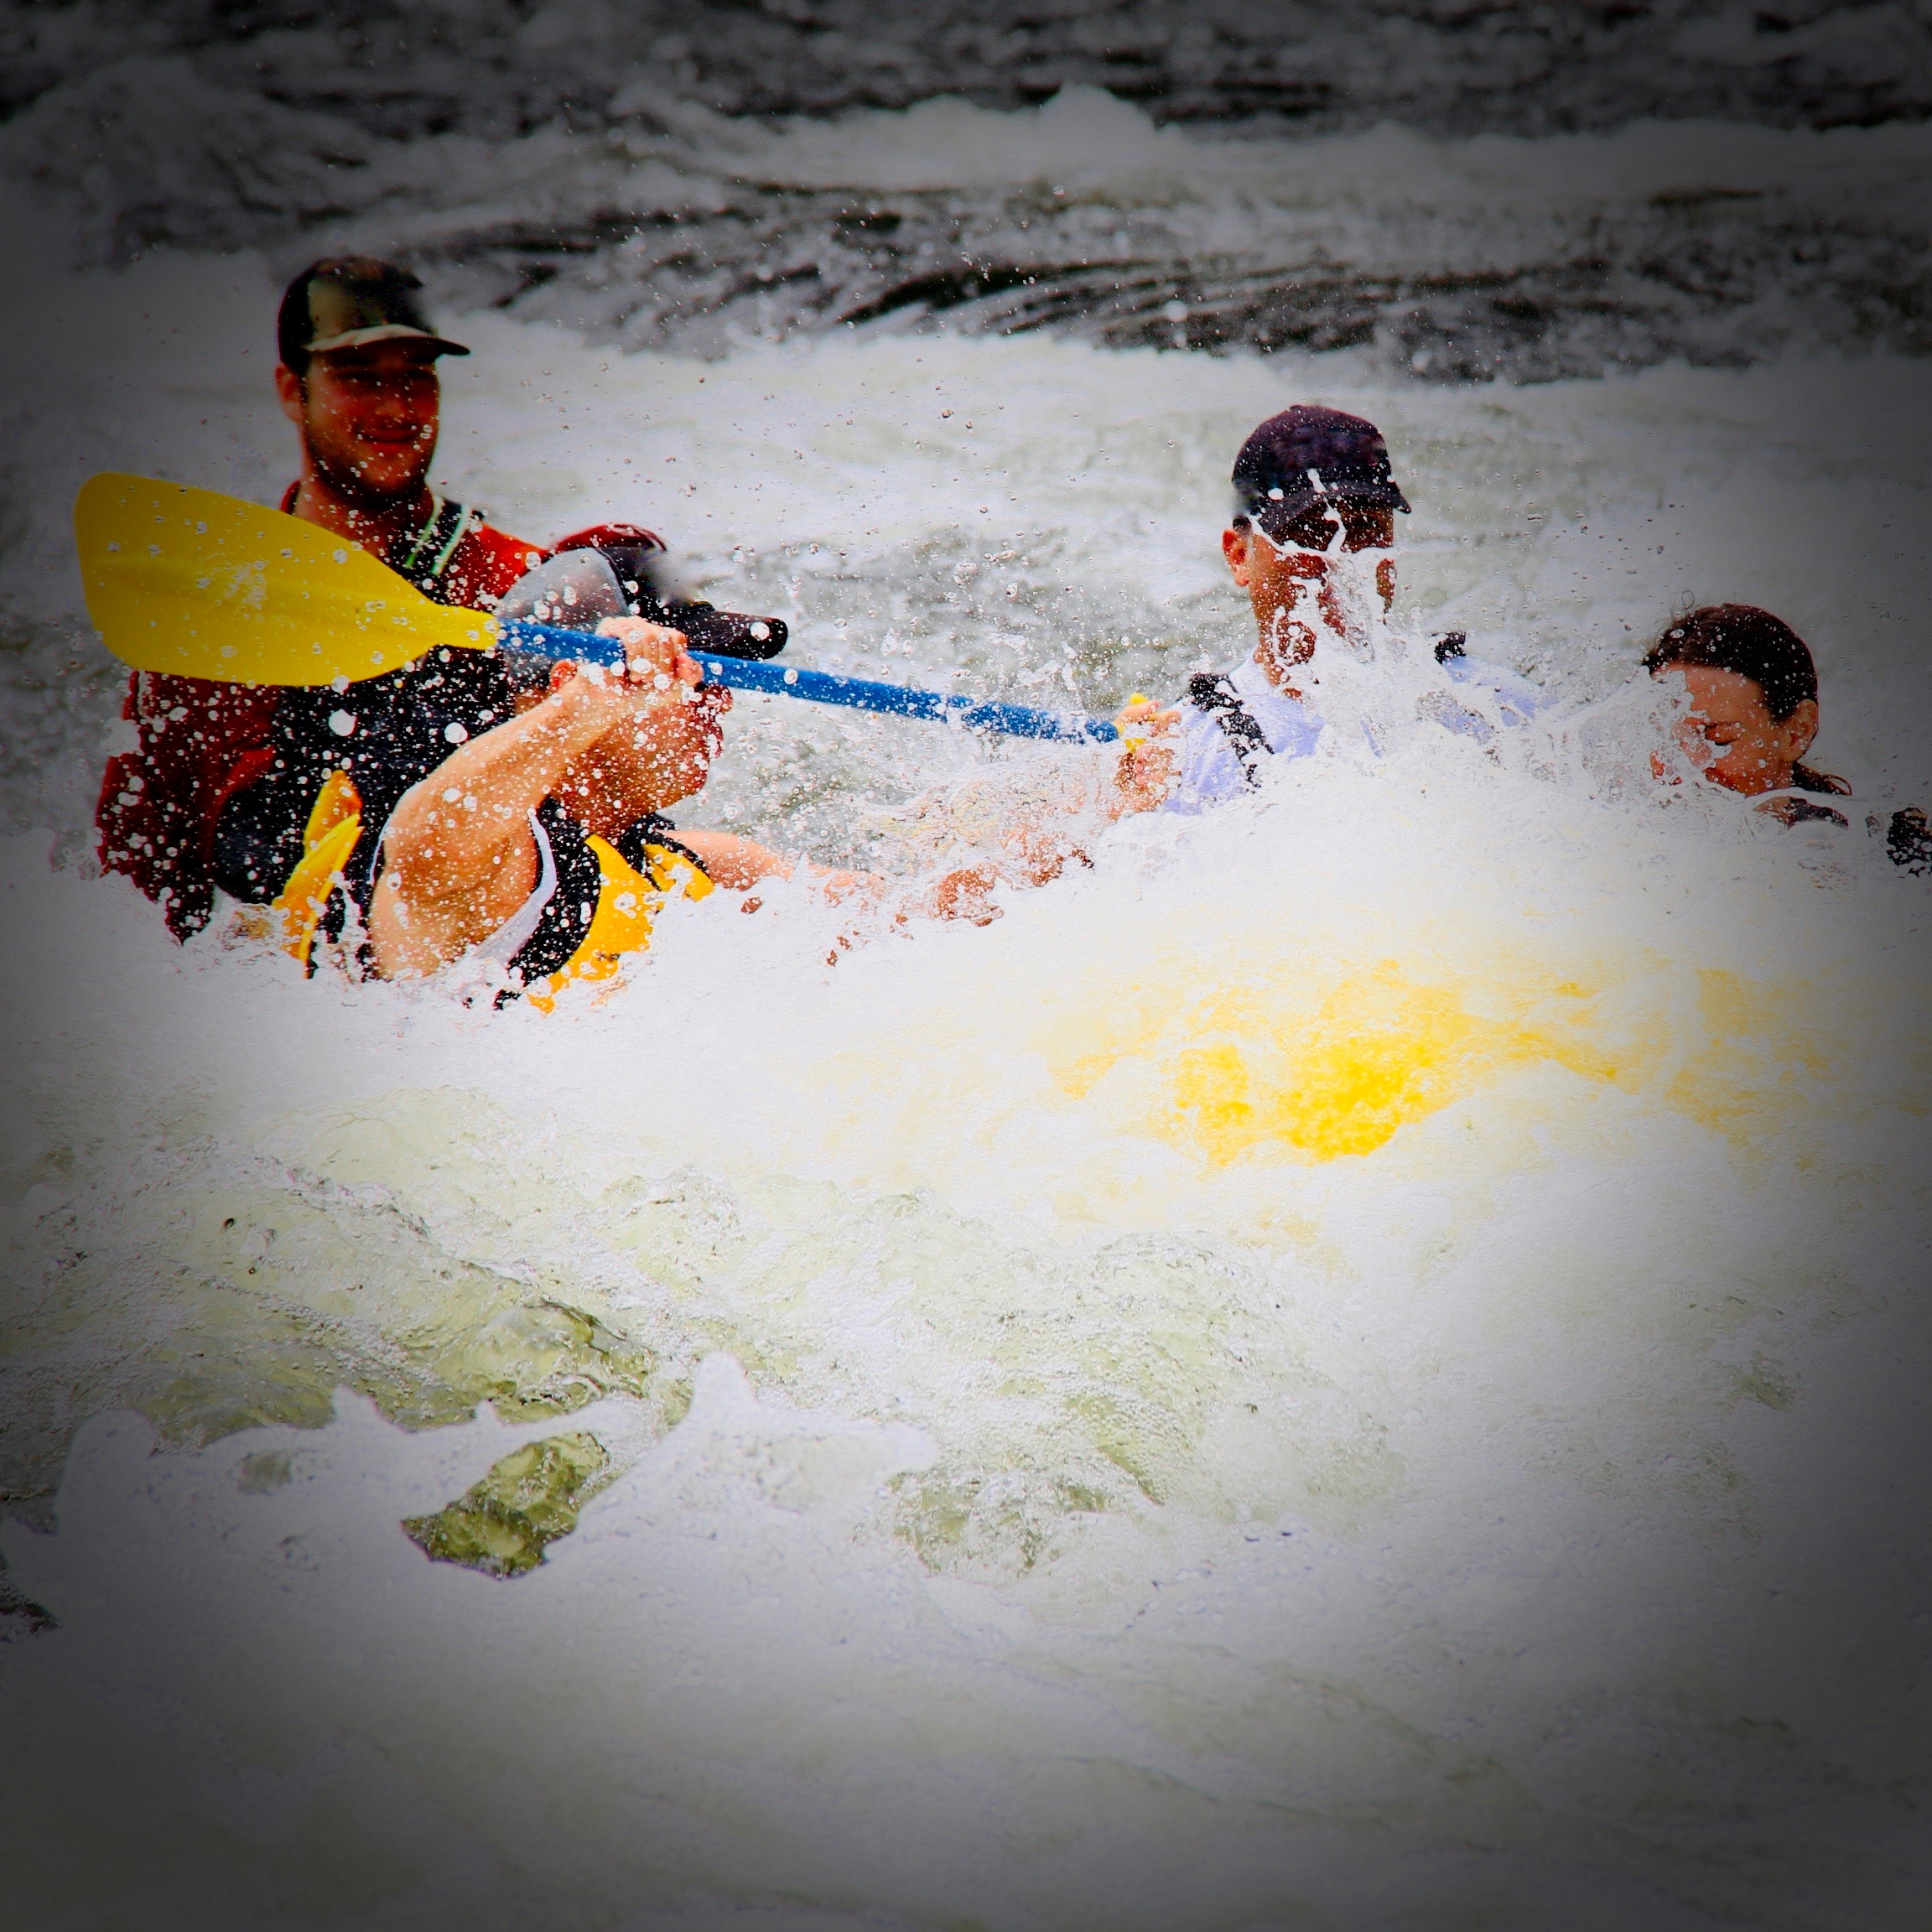 Fantasies - I turn myself on when… I fantasize.I used to shut down fantasies before they started. I don't know why. But now, when my day presents me with a whitewater guide who leads me on a crazy adventure that turns me on, I go ahead and let myself fantasize.